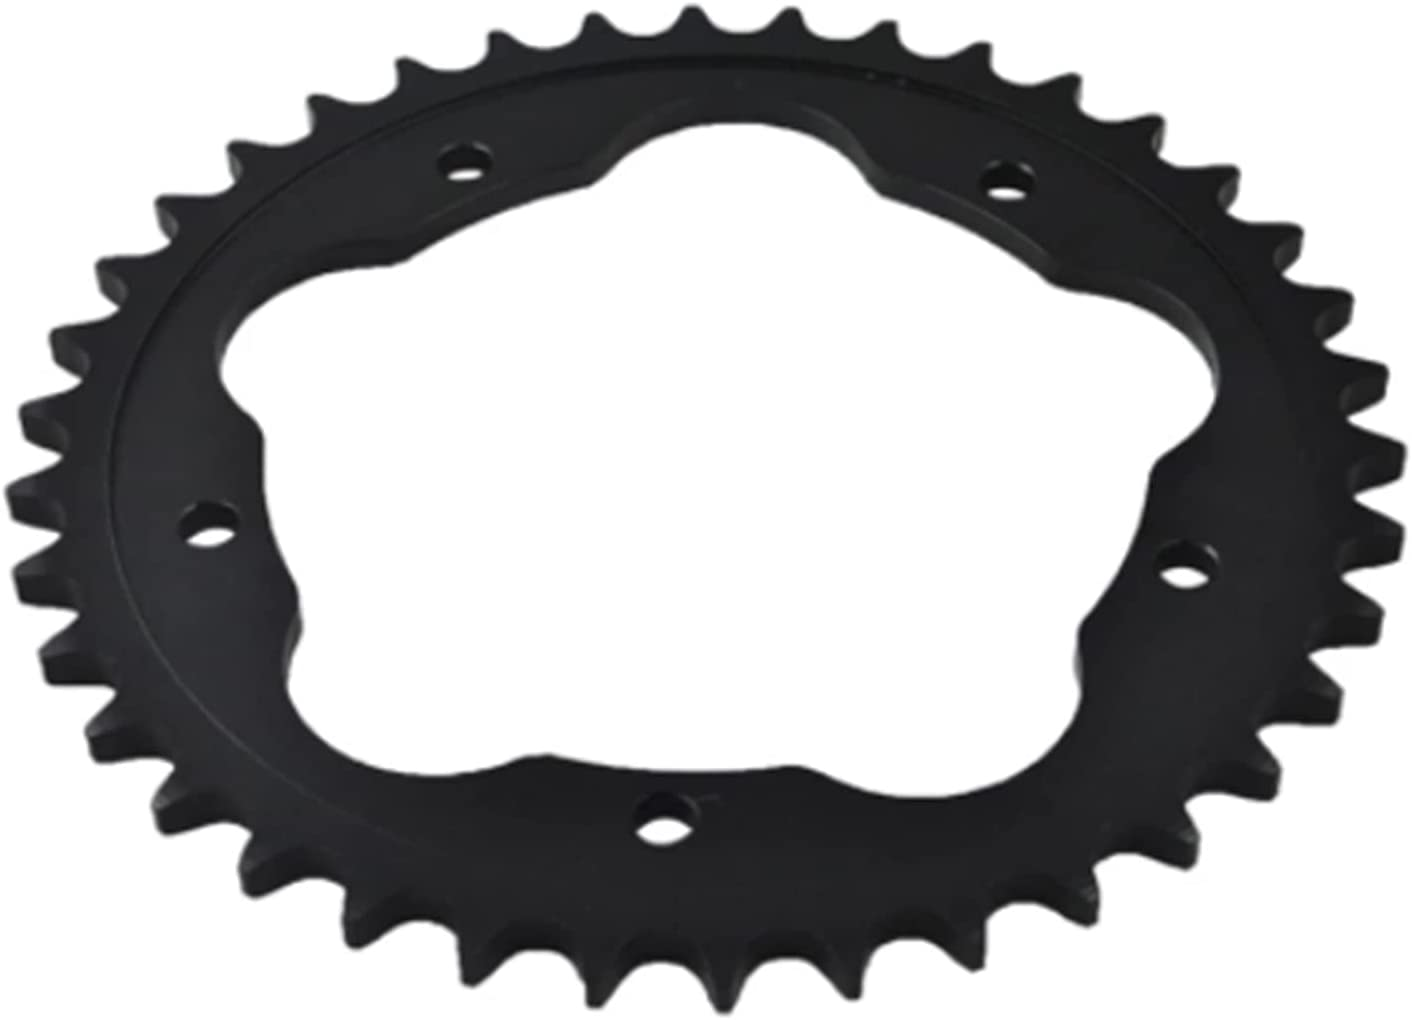 Ting TTRS Store Max 67% OFF 525 Chain Sprocket Fit Gear for Motorcycle Beauty products